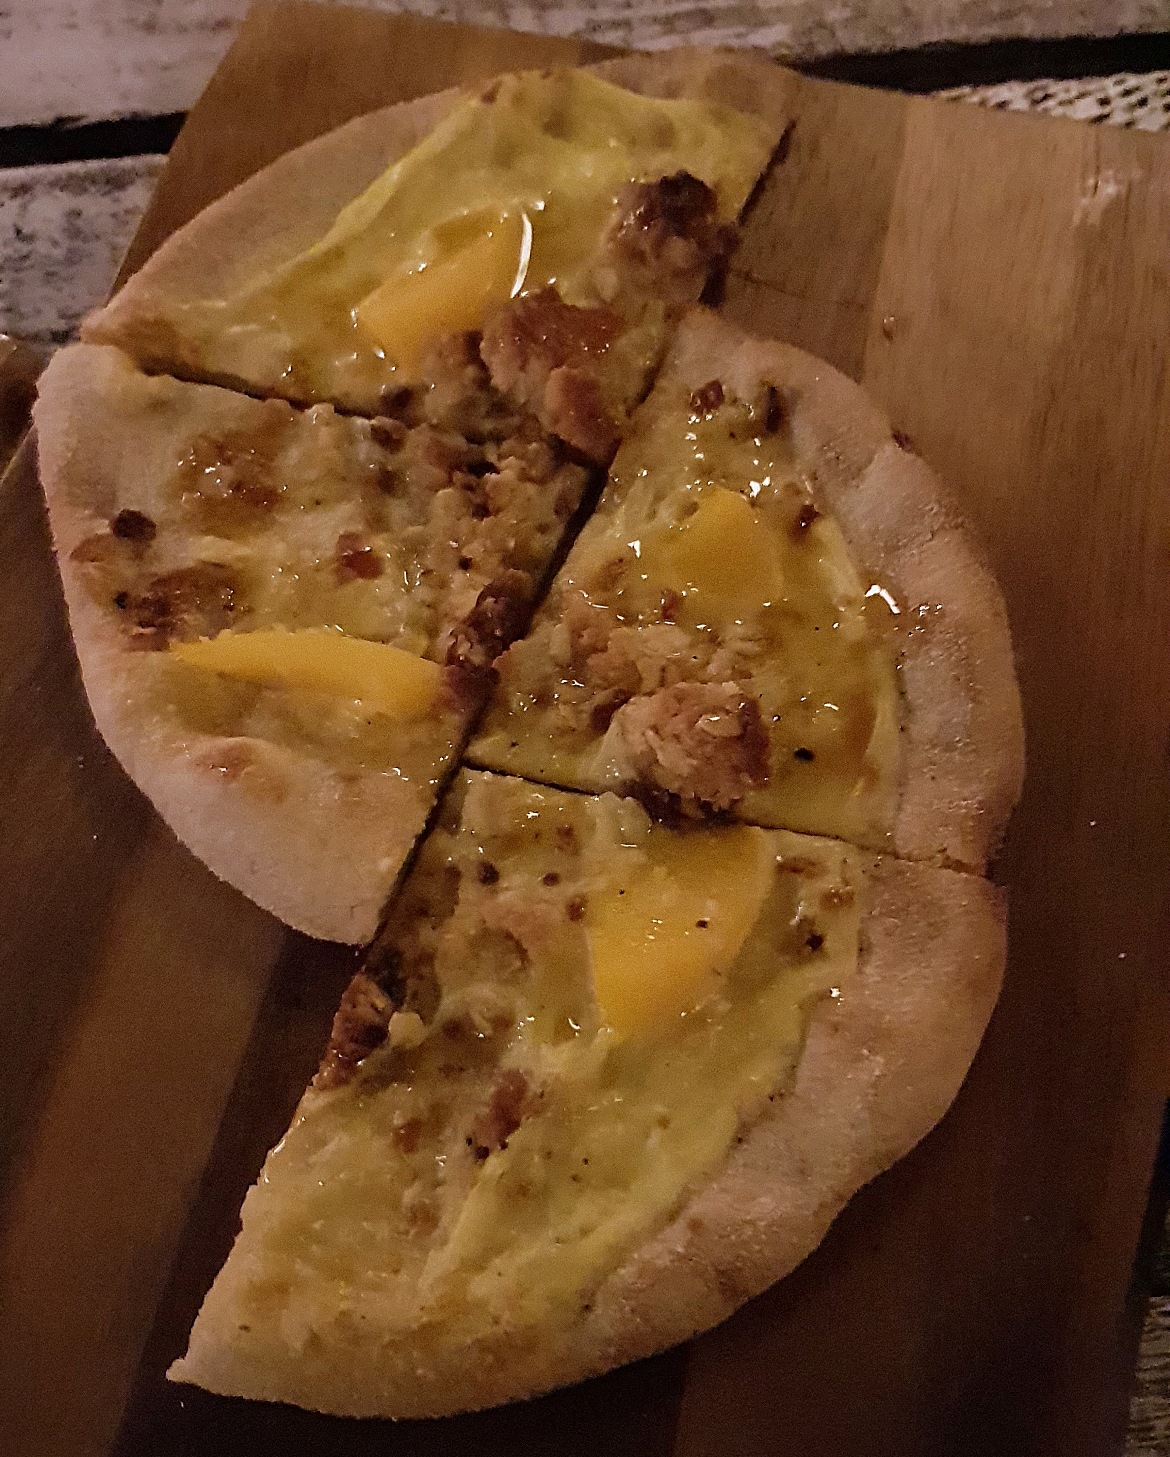 Blame Canada Dessert Pizza - Cuckoo, the newest cocktail and pizza bar on Call Lane in Leeds - Bar Review by BeckyBecky Blogs